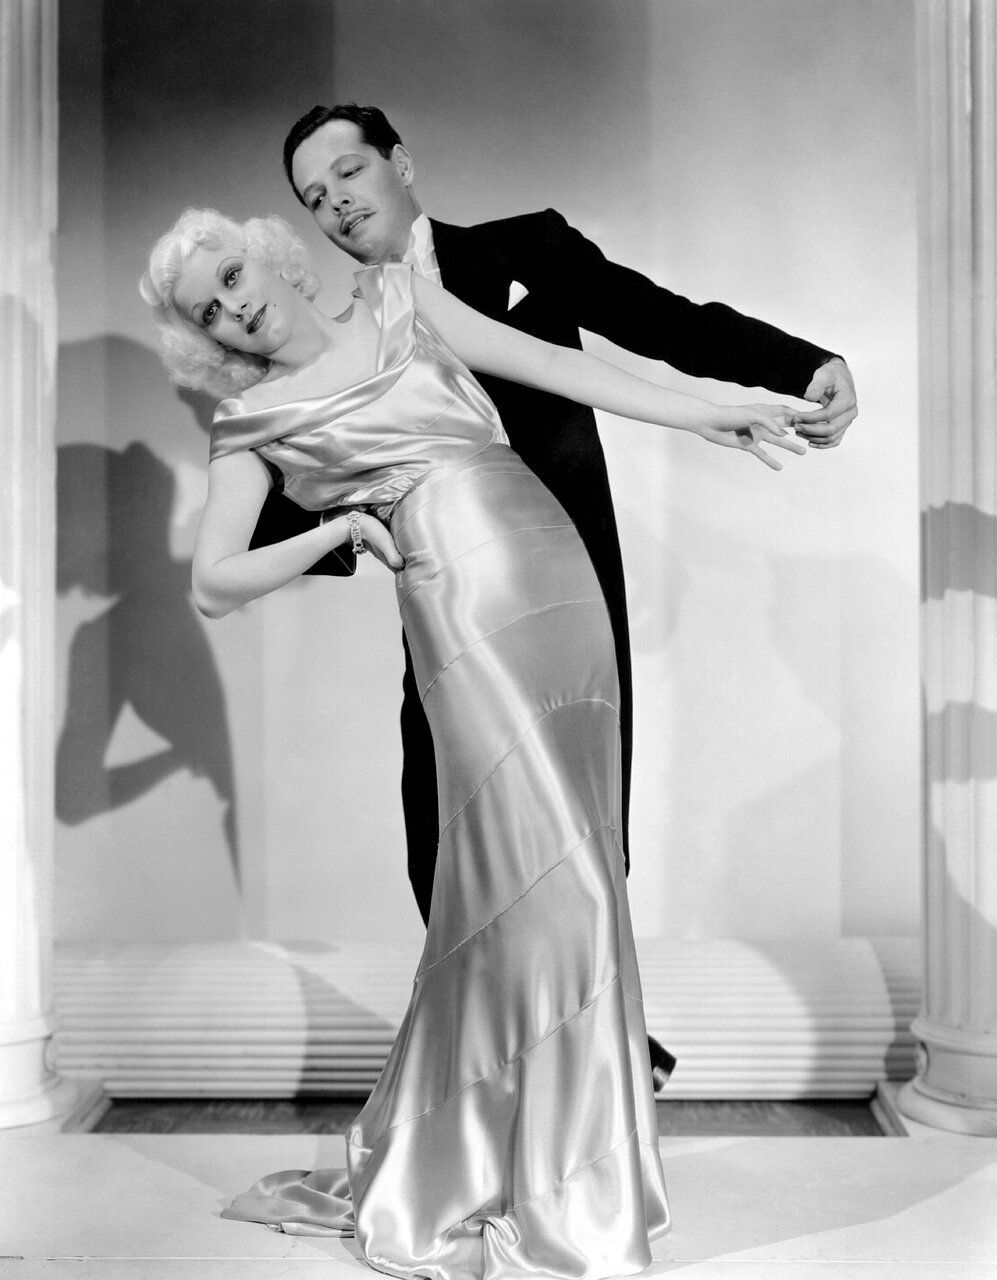 1935: Blonde actress Jean Harlow (1911 - 1937) makes her dancing debut with Carl Randall, the dance star and director in a scene from the musical 'Reckless', directed by Victor Fleming for MGM.